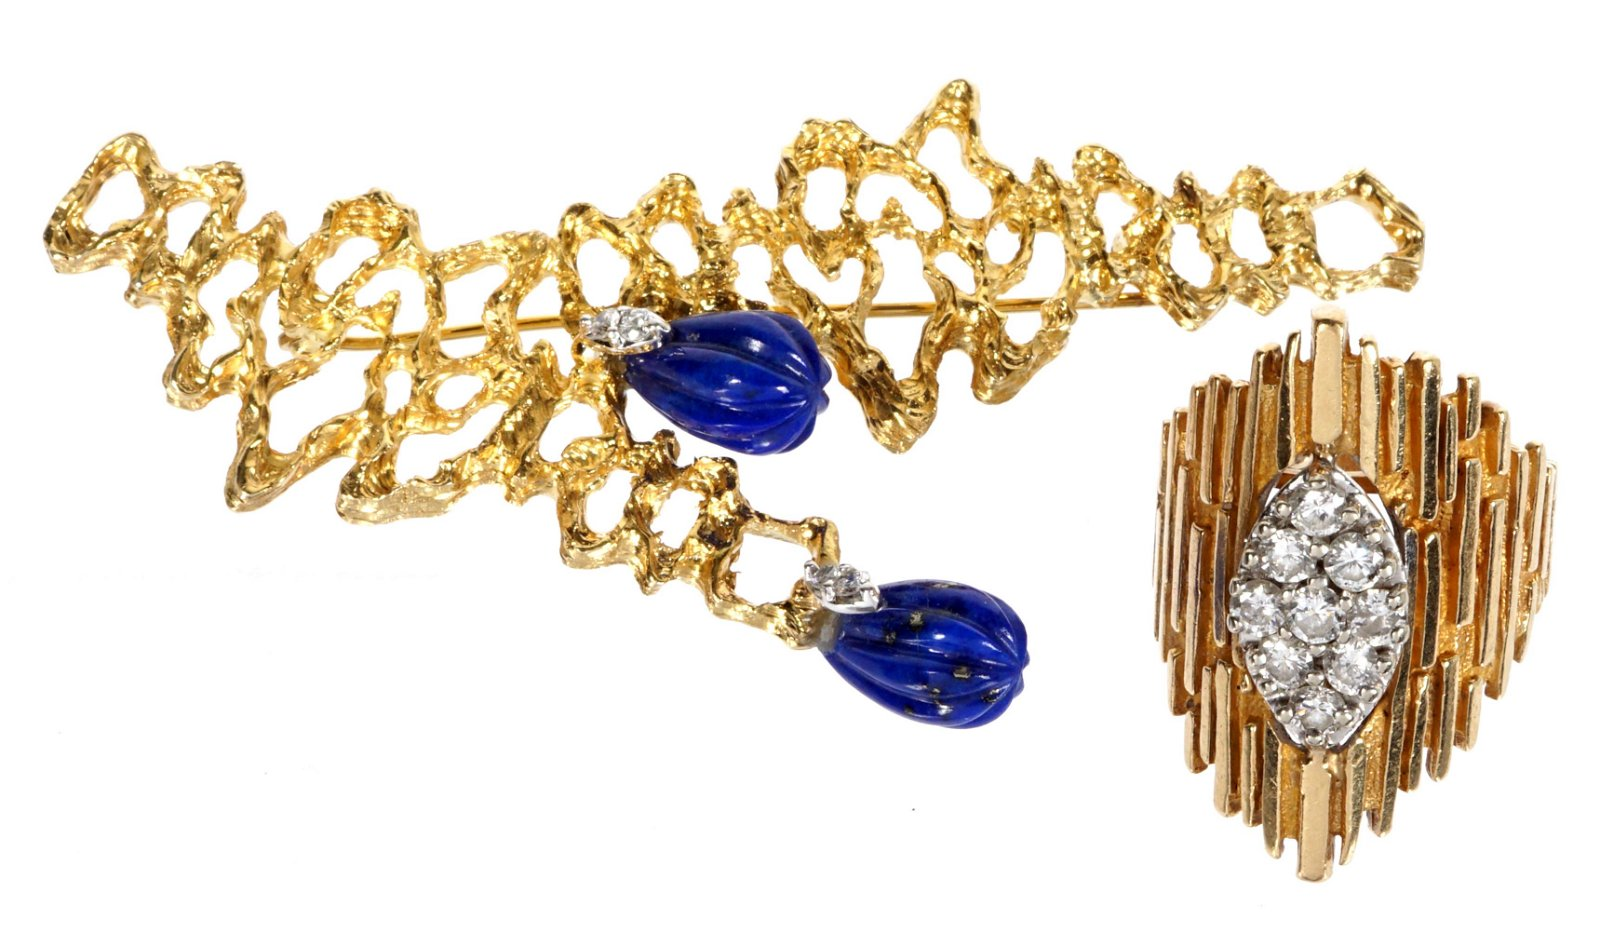 Brutalist Gold & Diamond Ring and Lapis Brooch